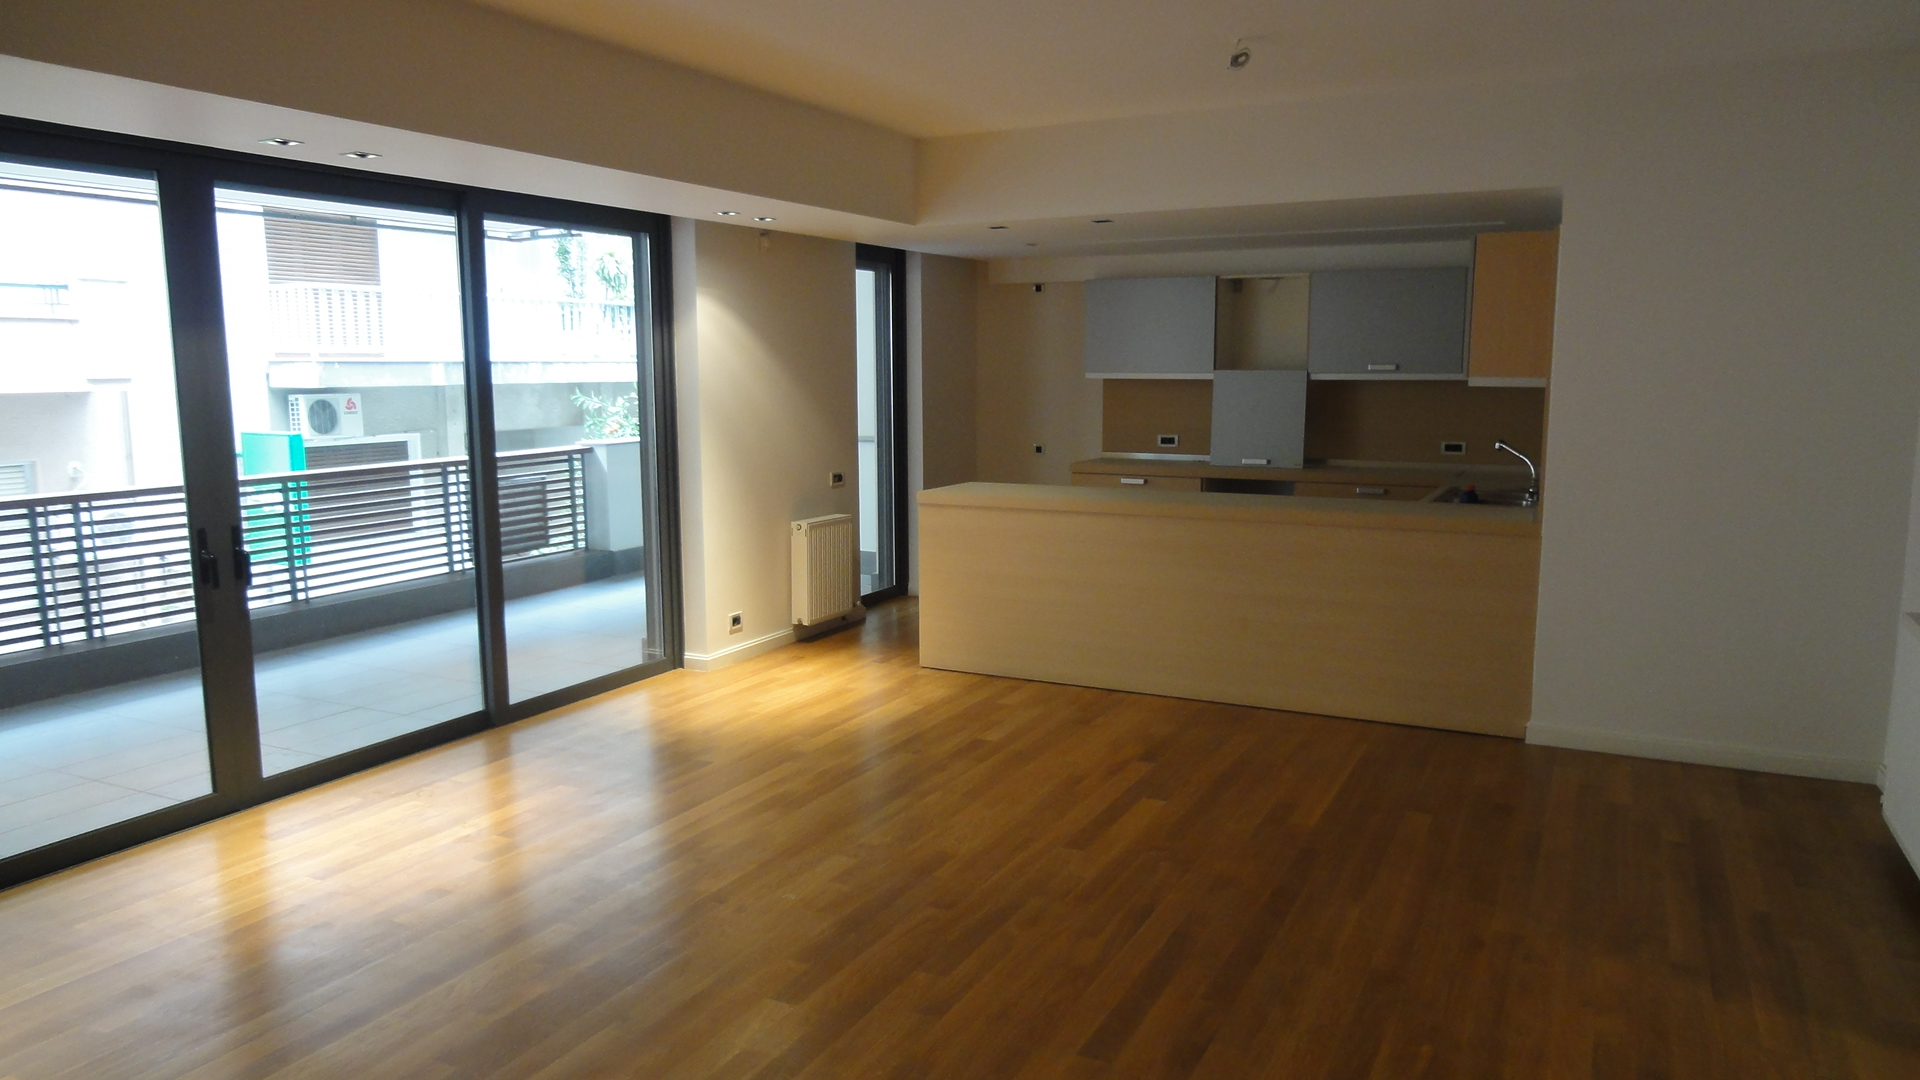 Newly built apartment